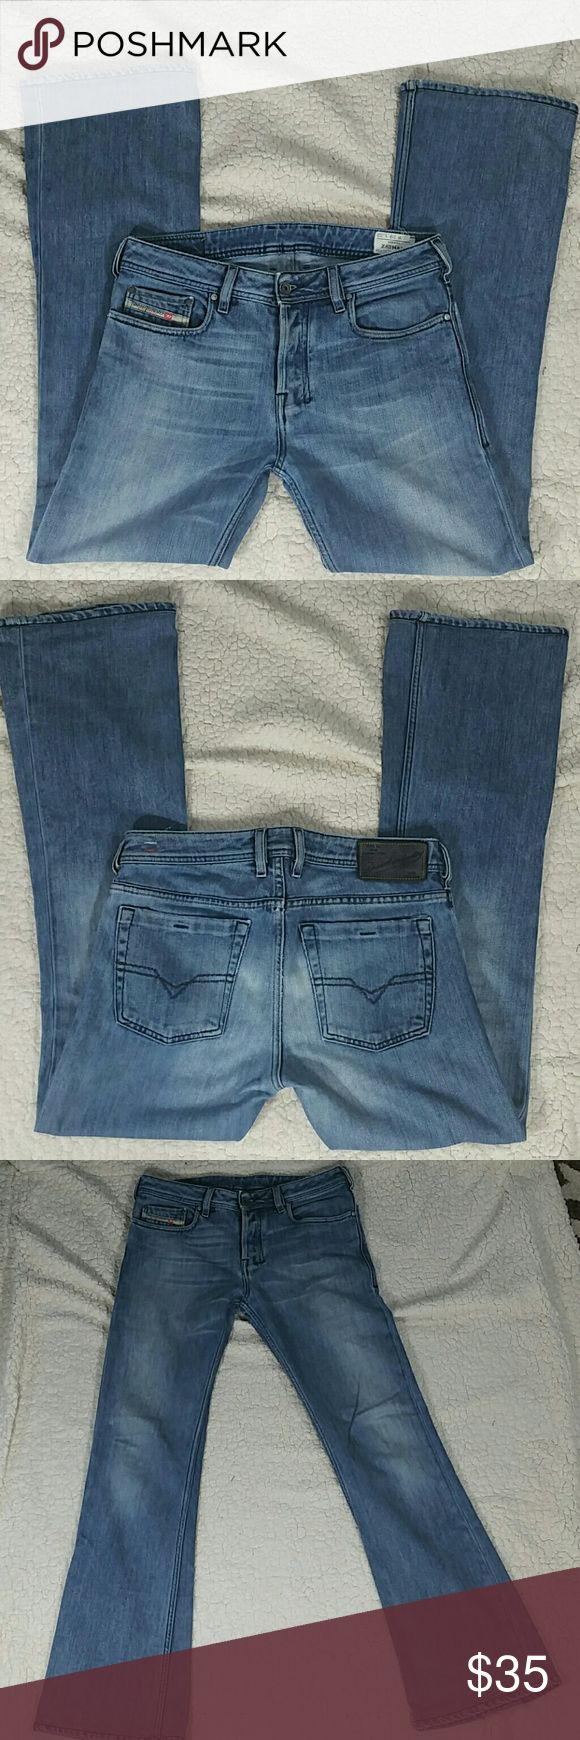 Deisel Zathan button-fly jeans 28W x 32L 29X32 Zathan Jeans Wash 0072J Made in Italy Diesel Jeans Bootcut